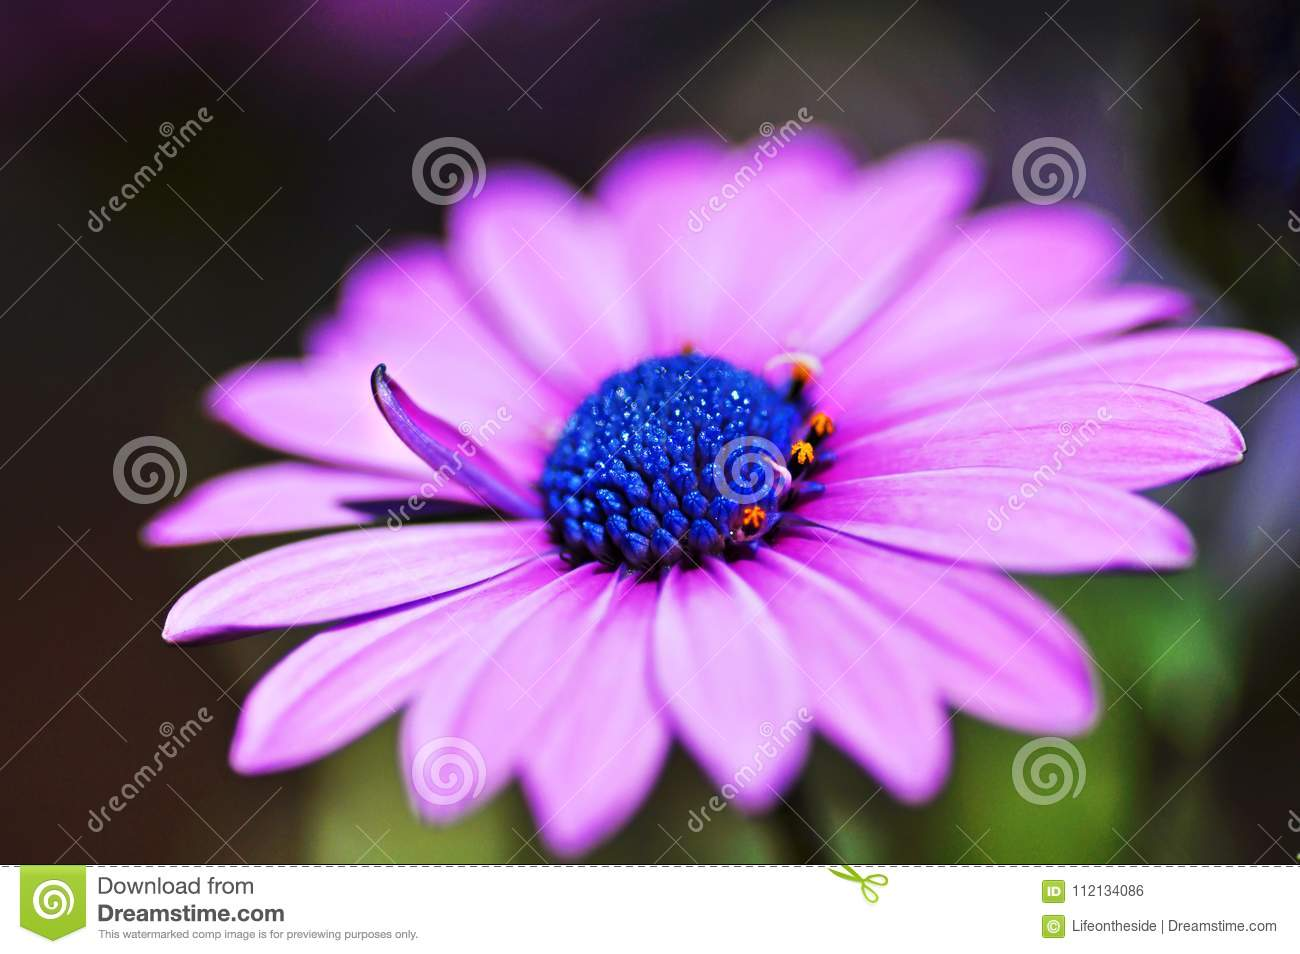 Macro close-up violet purple African Cape osteospermum daisy flower